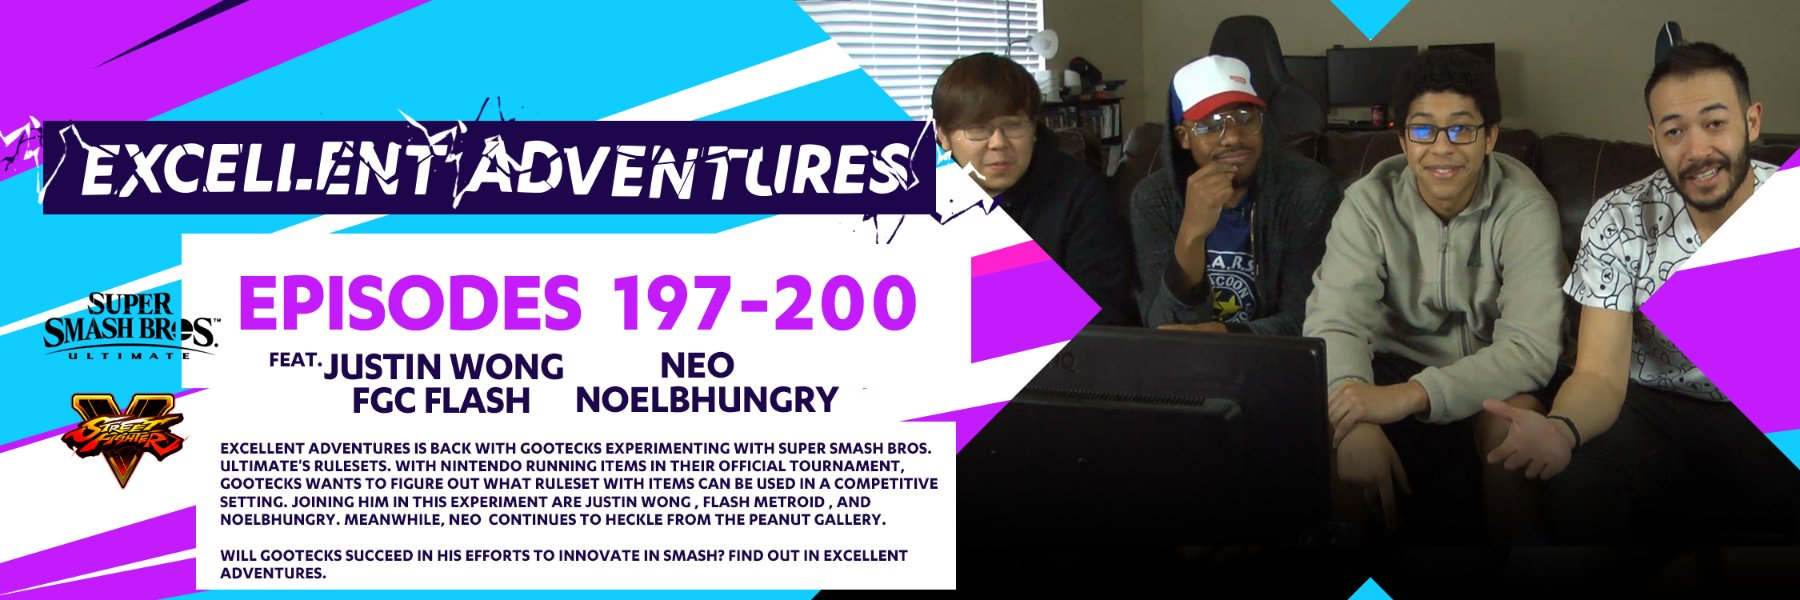 Excellent Adventures returns with SSBU and experimenting with the ruleset!